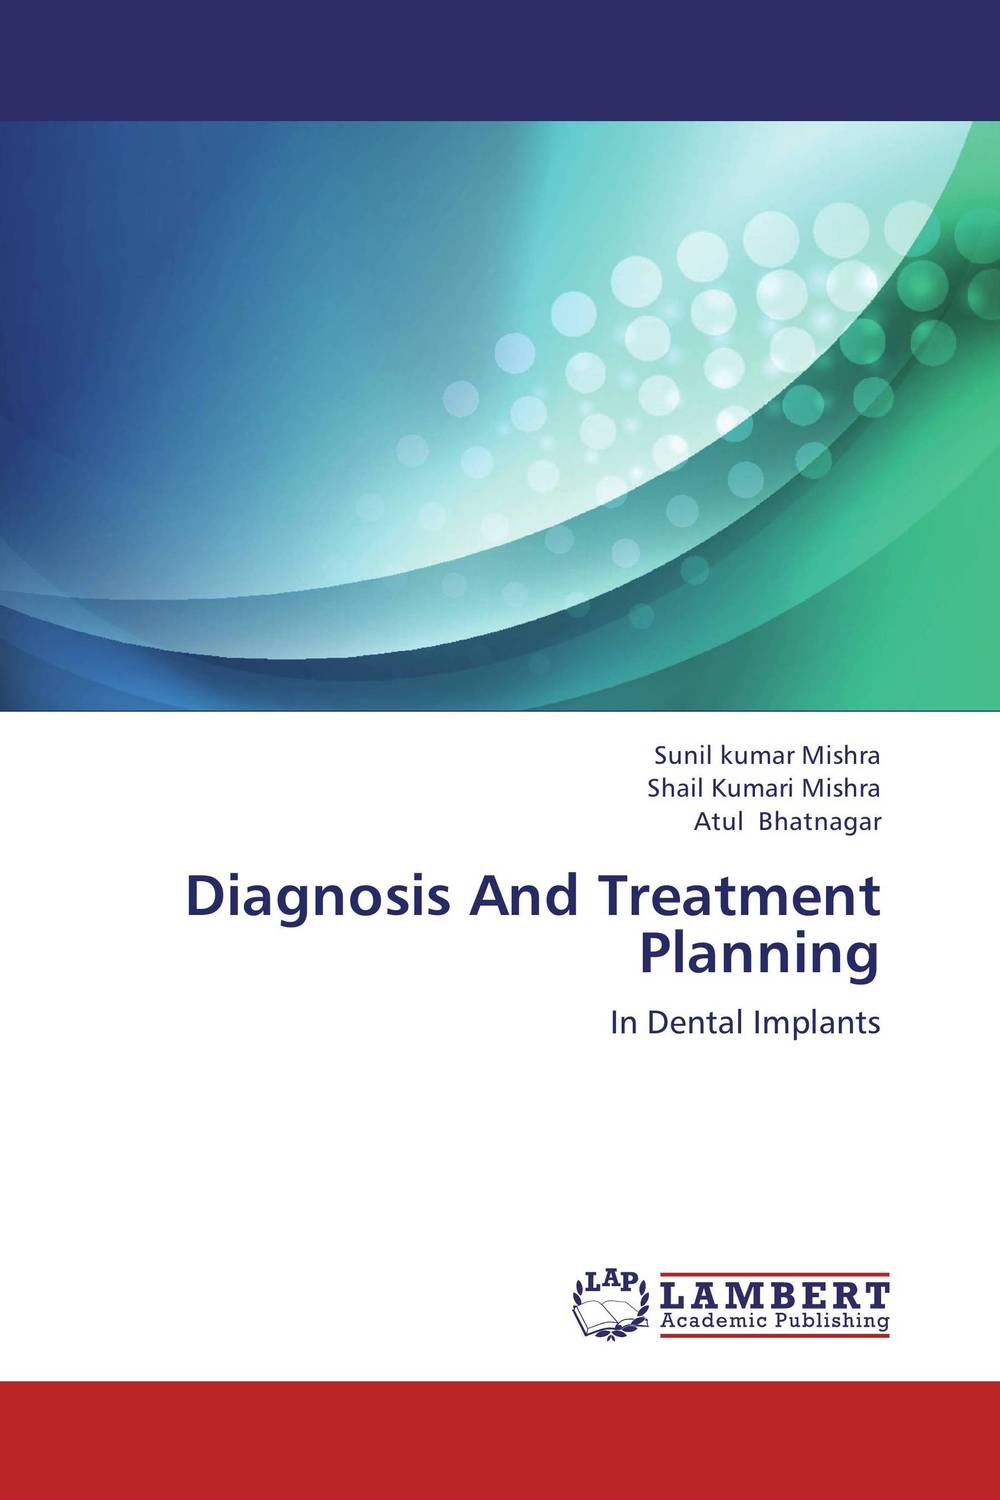 Diagnosis And Treatment Planning